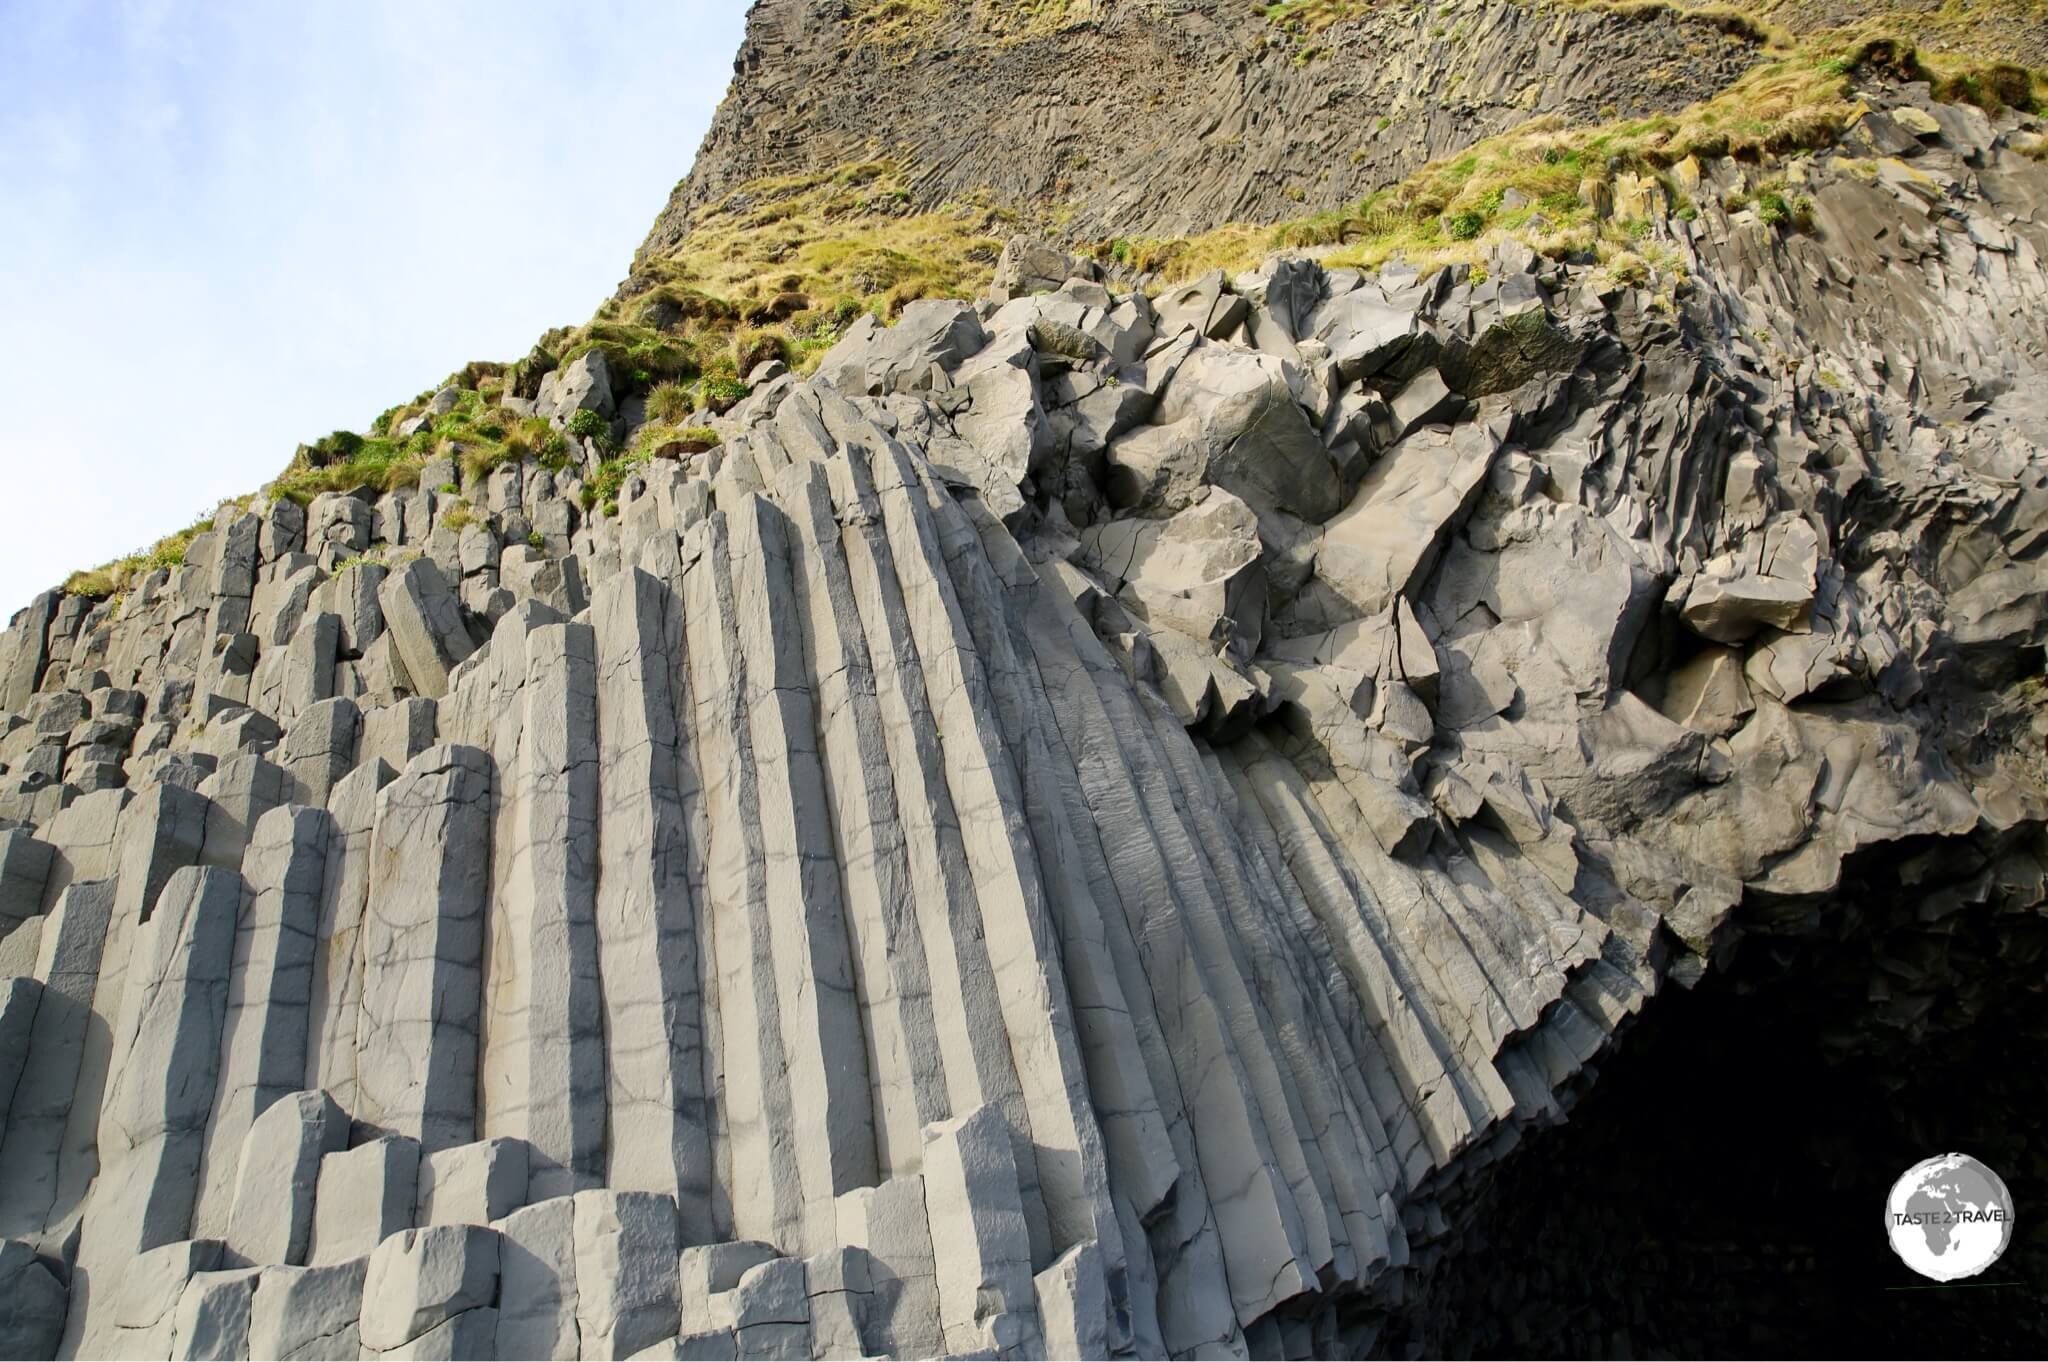 The perfectly formed basalt columns form a rocky pyramid known as Gardar.